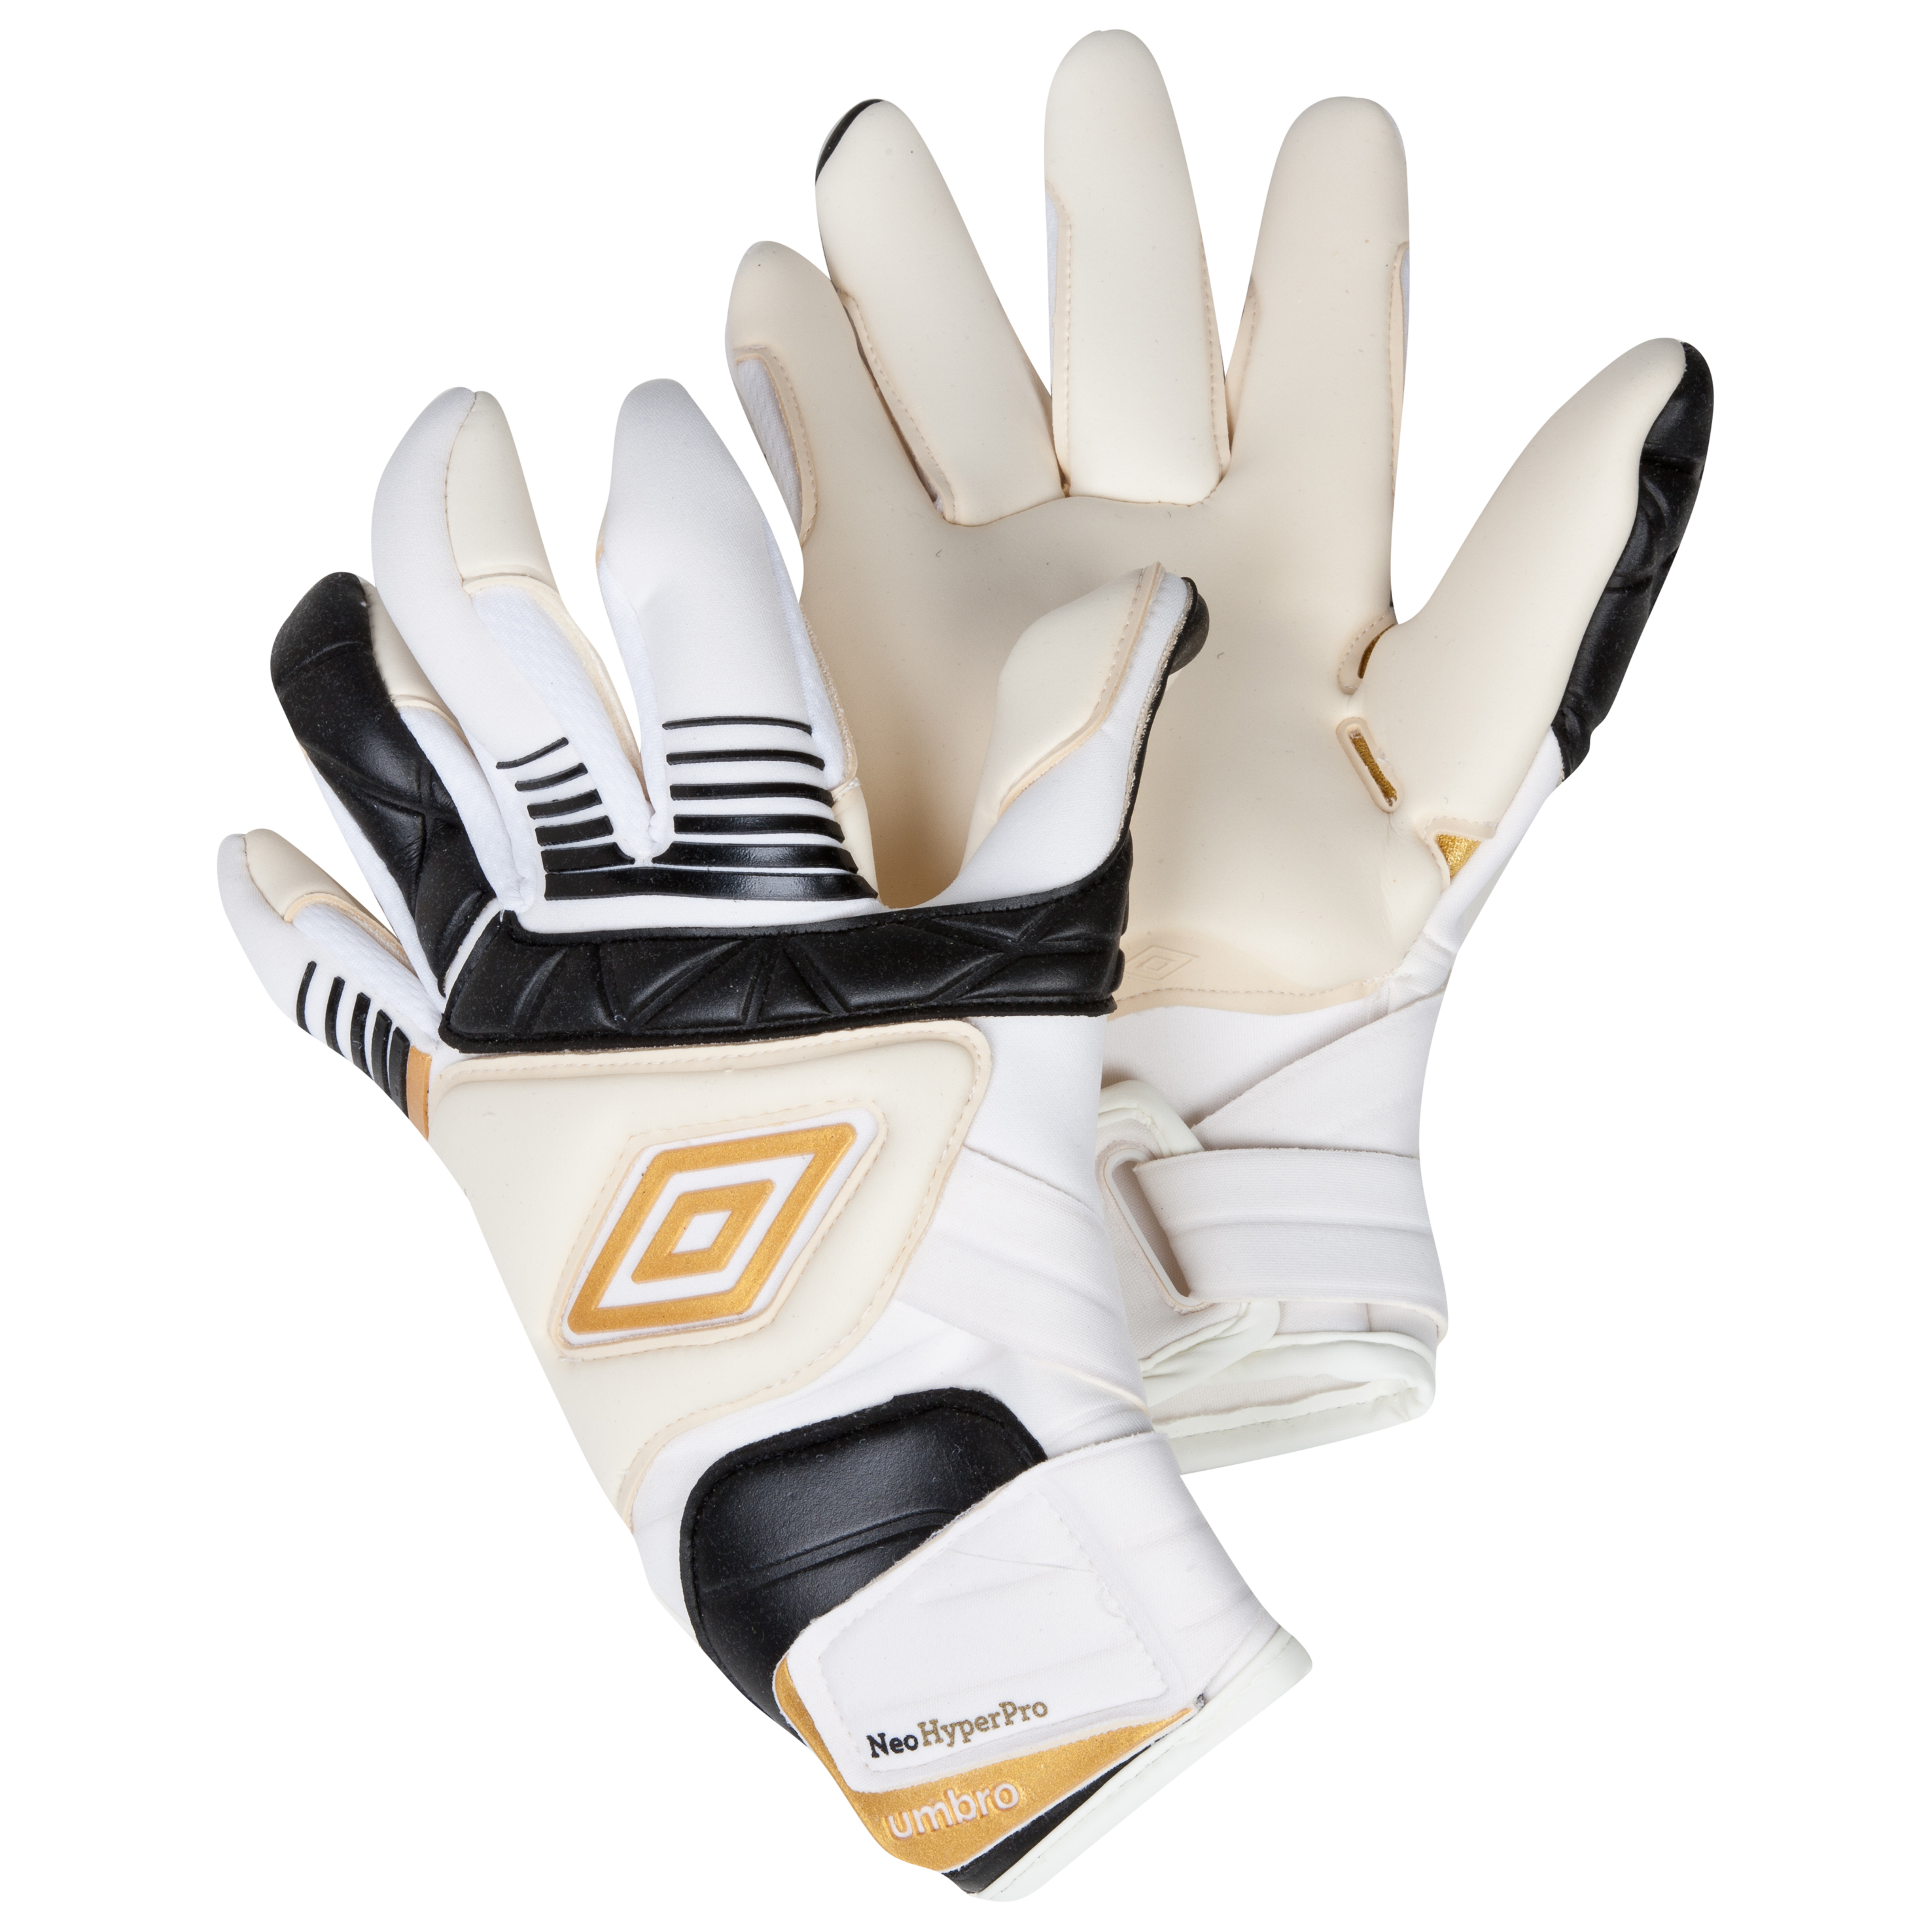 Umbro Neo Pro Goalkeeper Gloves - White/Black/Gold